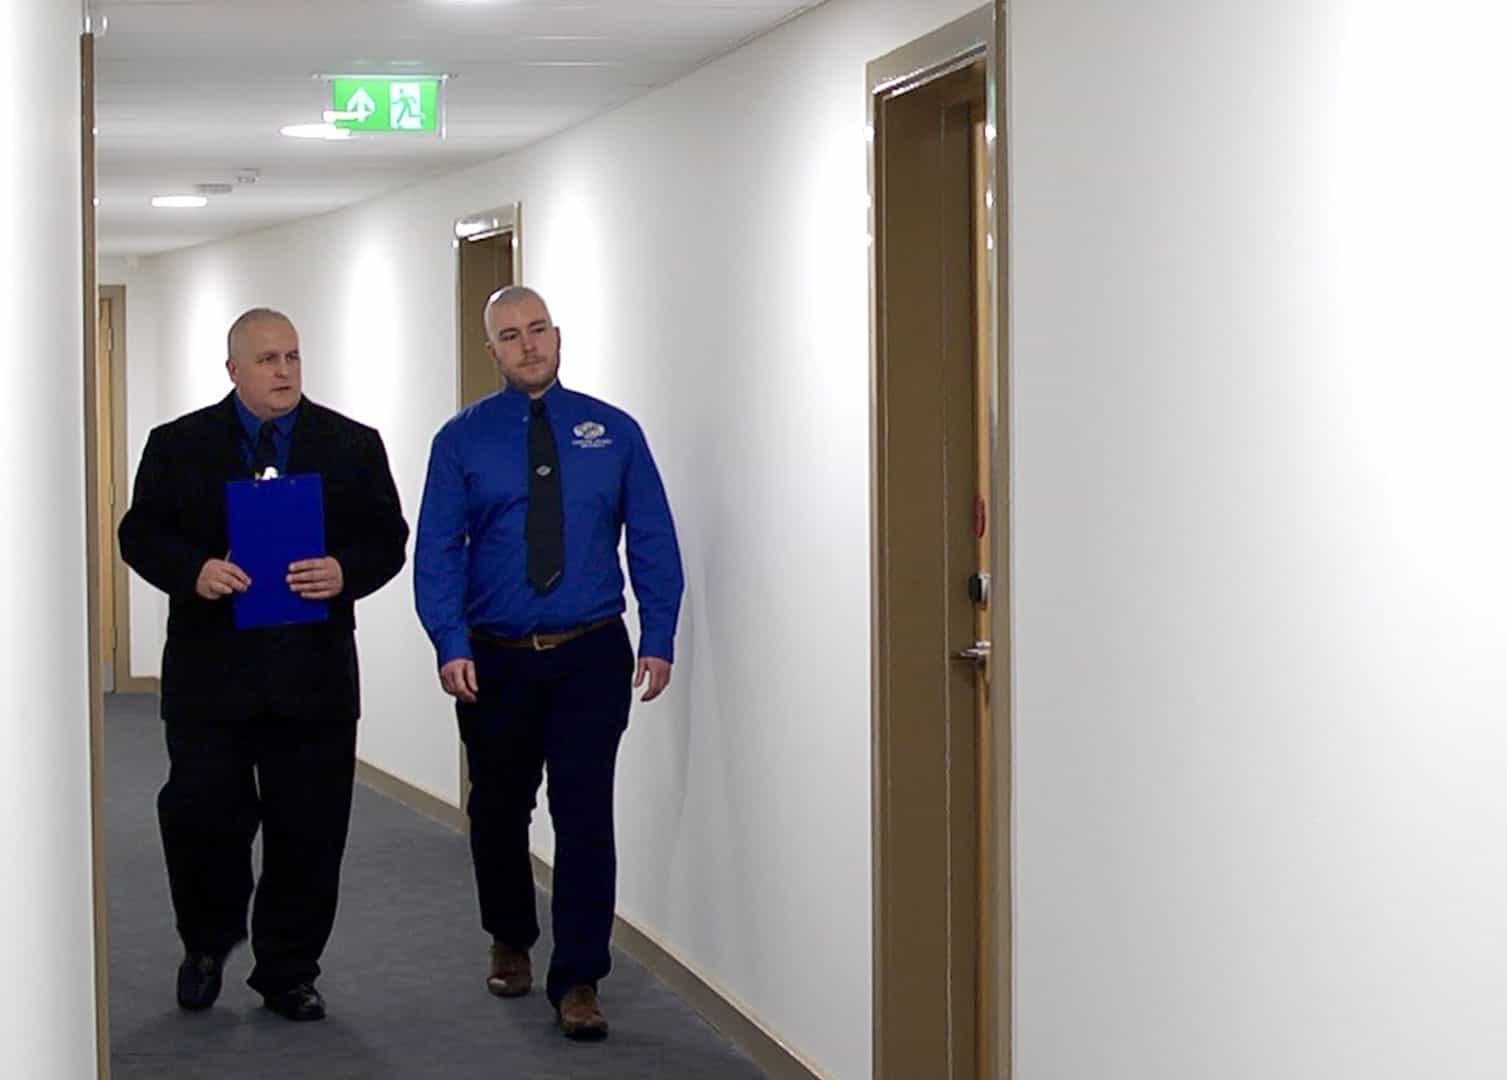 LGS guards walking hotel corridor